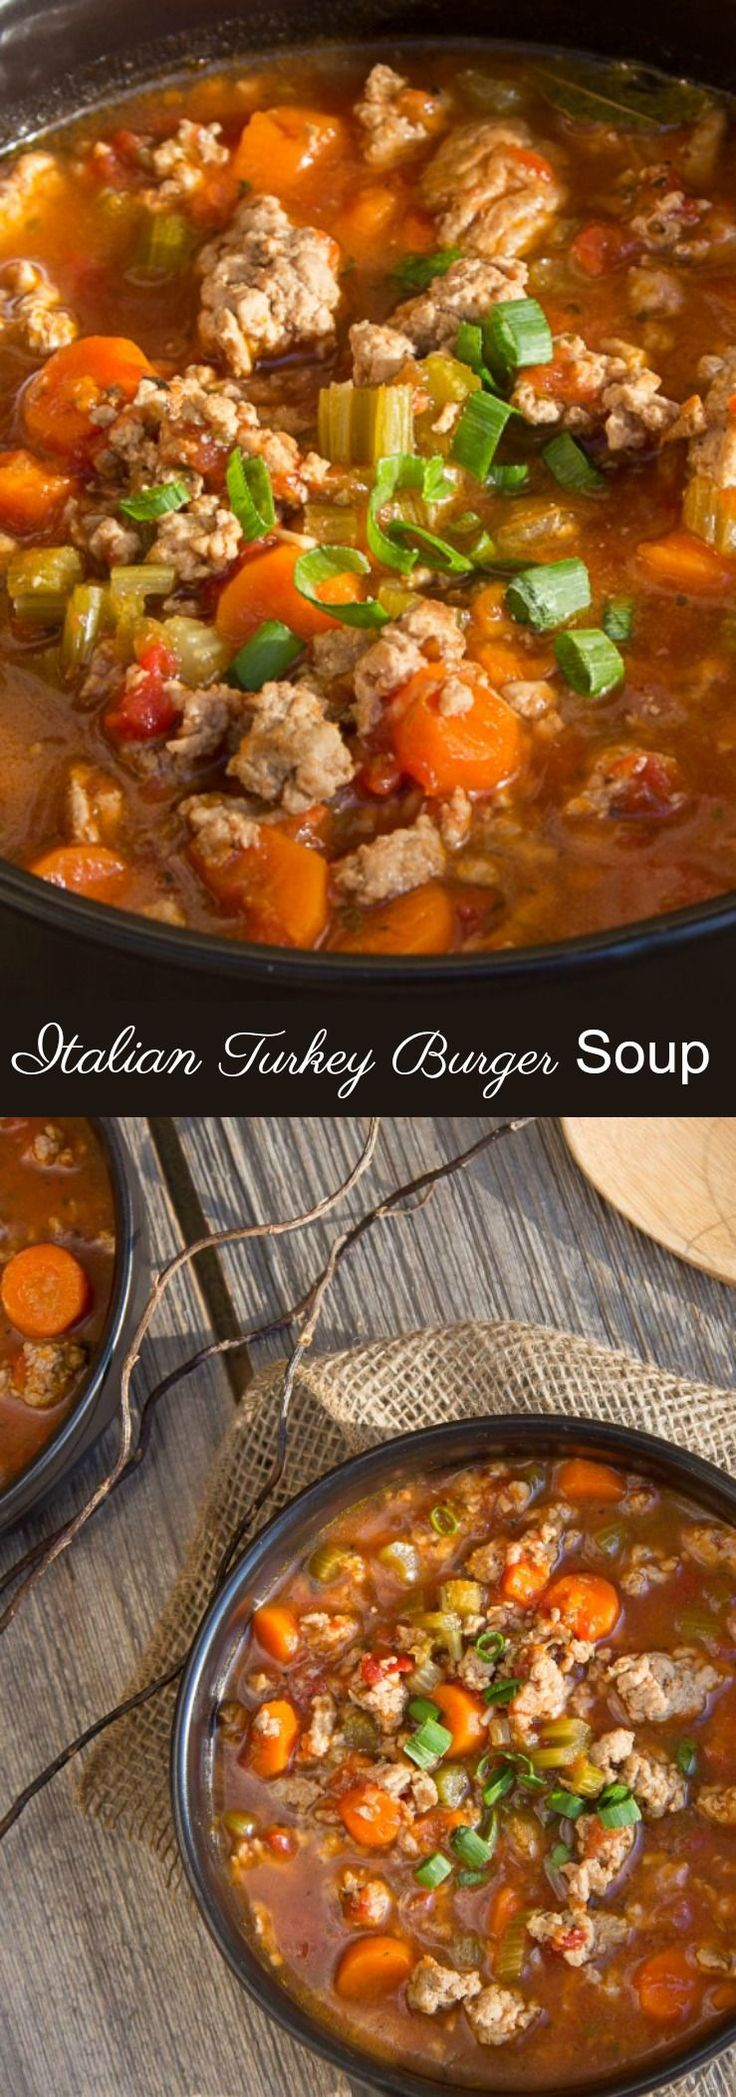 Italian Turkey Burger Soup, both healthy and hearty made with lean ground turkey. paleo crockpot dessert